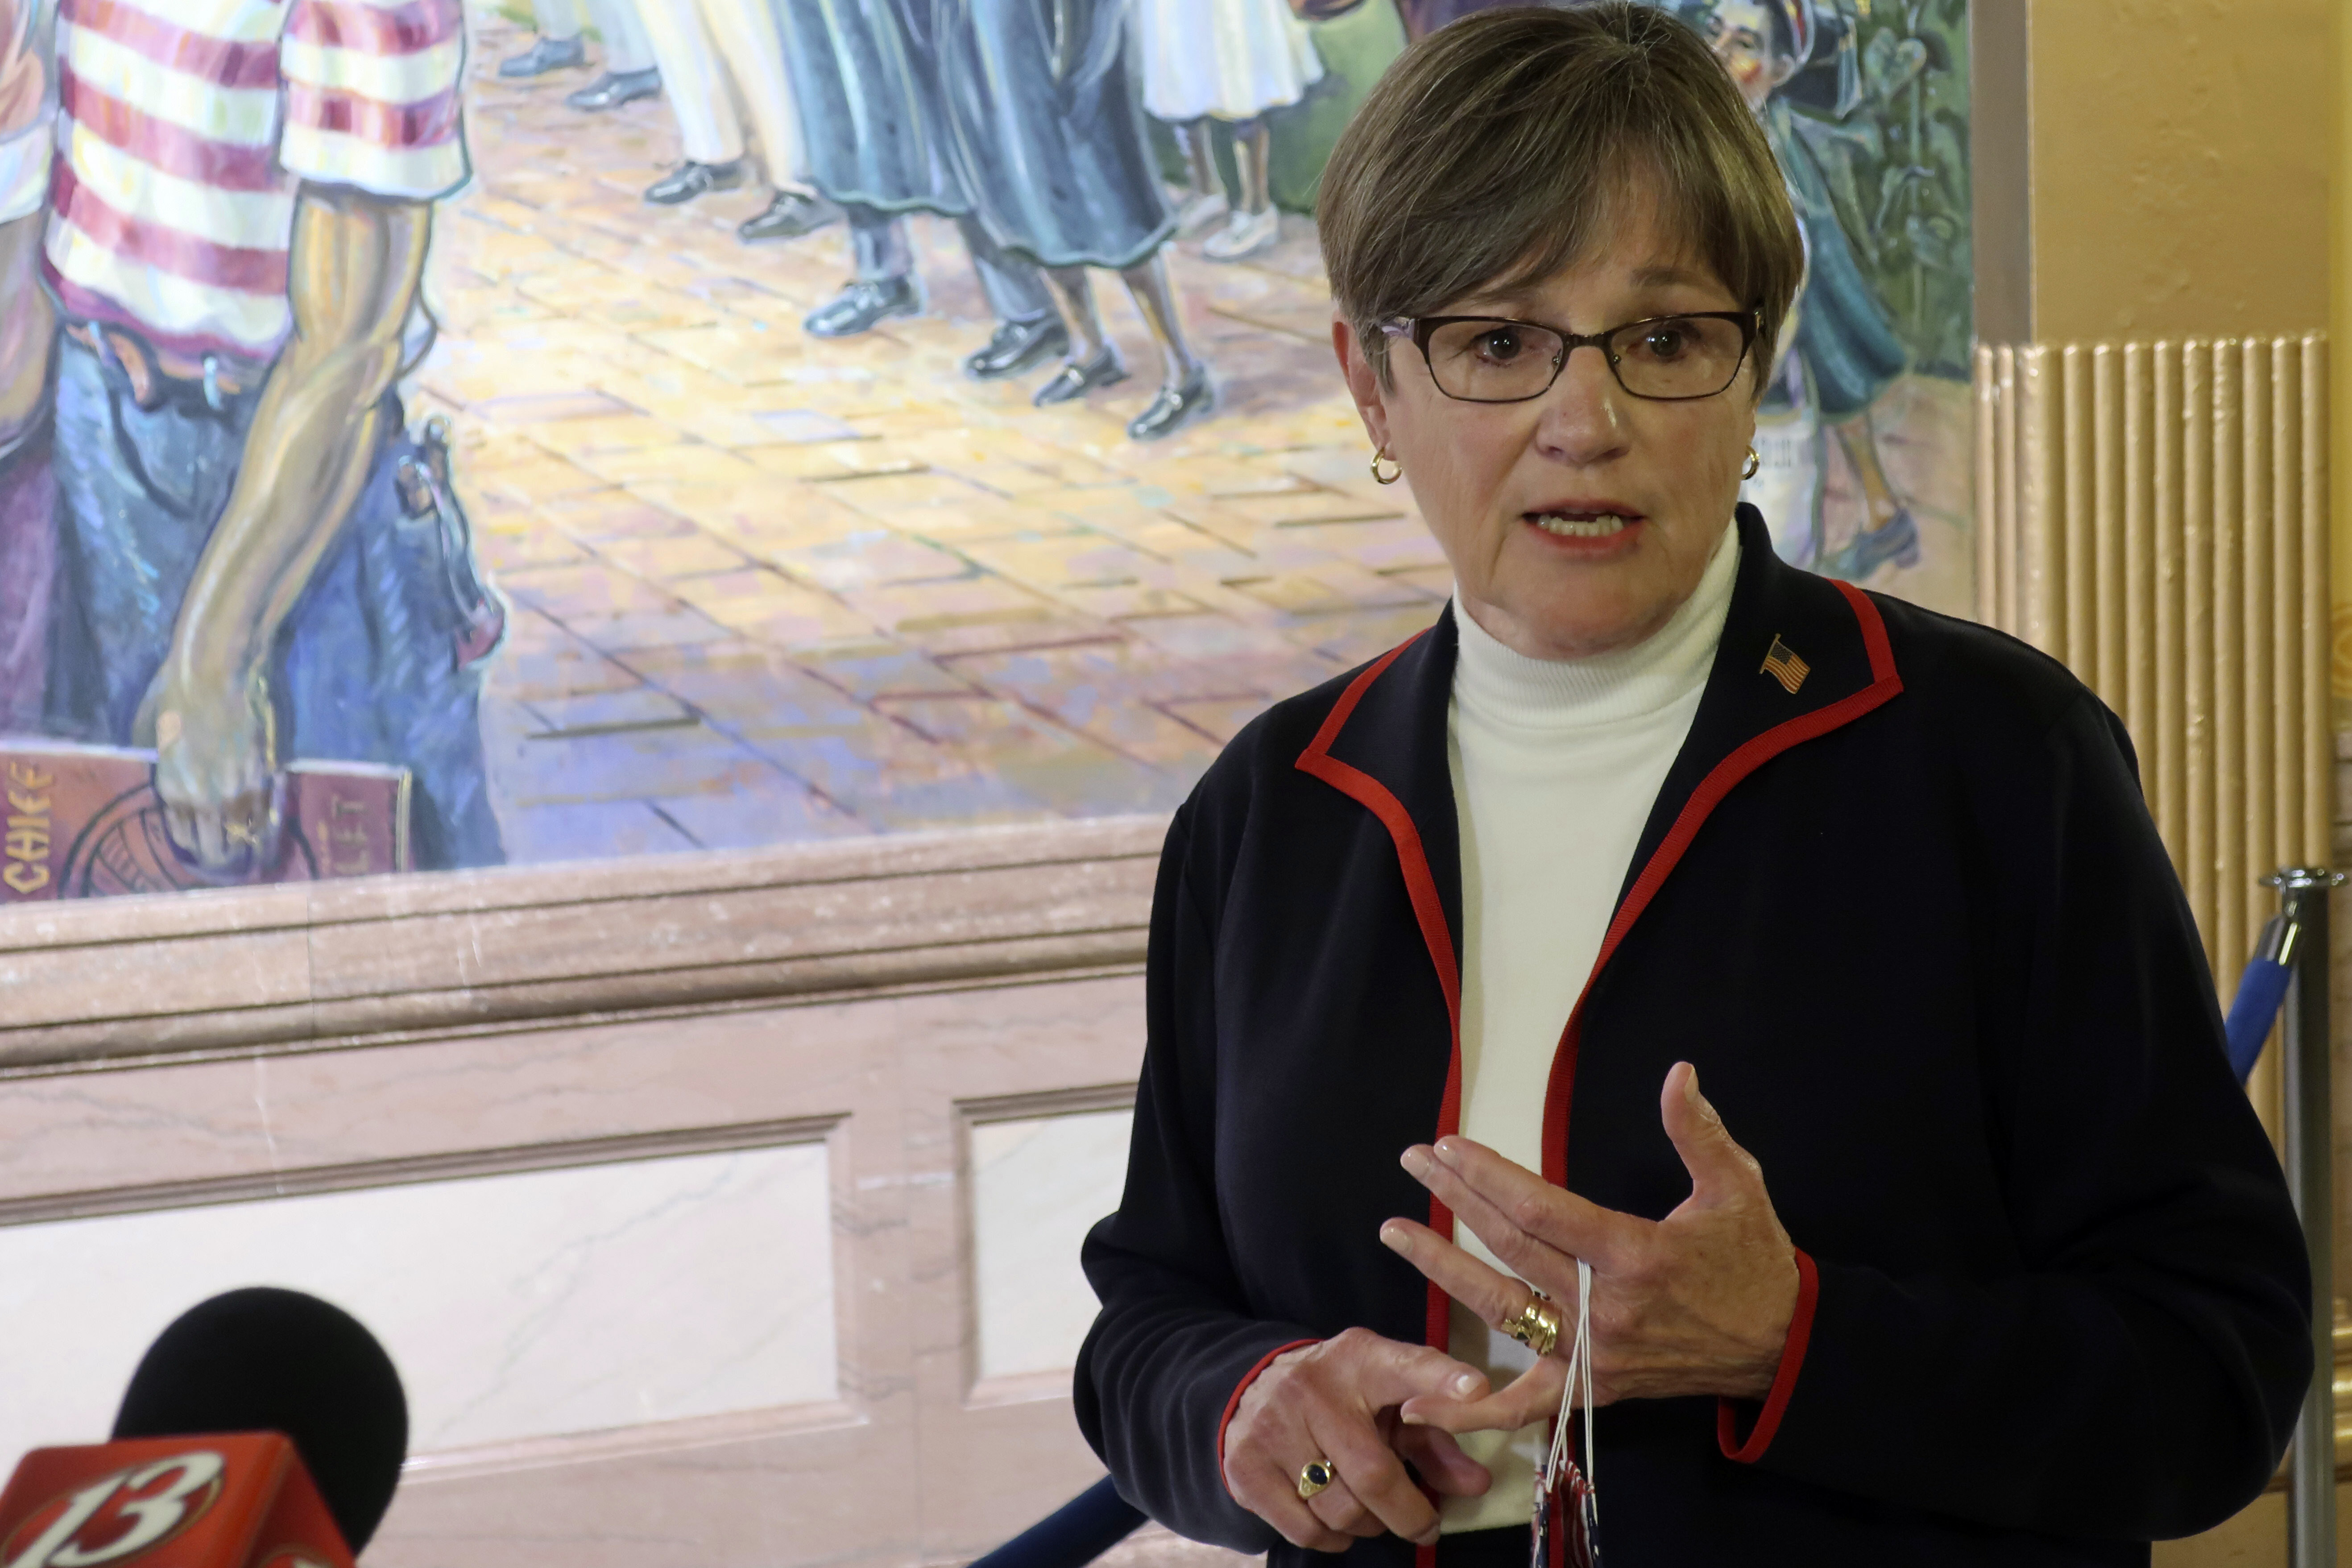 Kansas Gov. Laura Kelly answers questions from reporters about the coronavirus pandemic after a meeting with legislative leaders, July 2, 2020, at the Statehouse in Topeka, Kan.